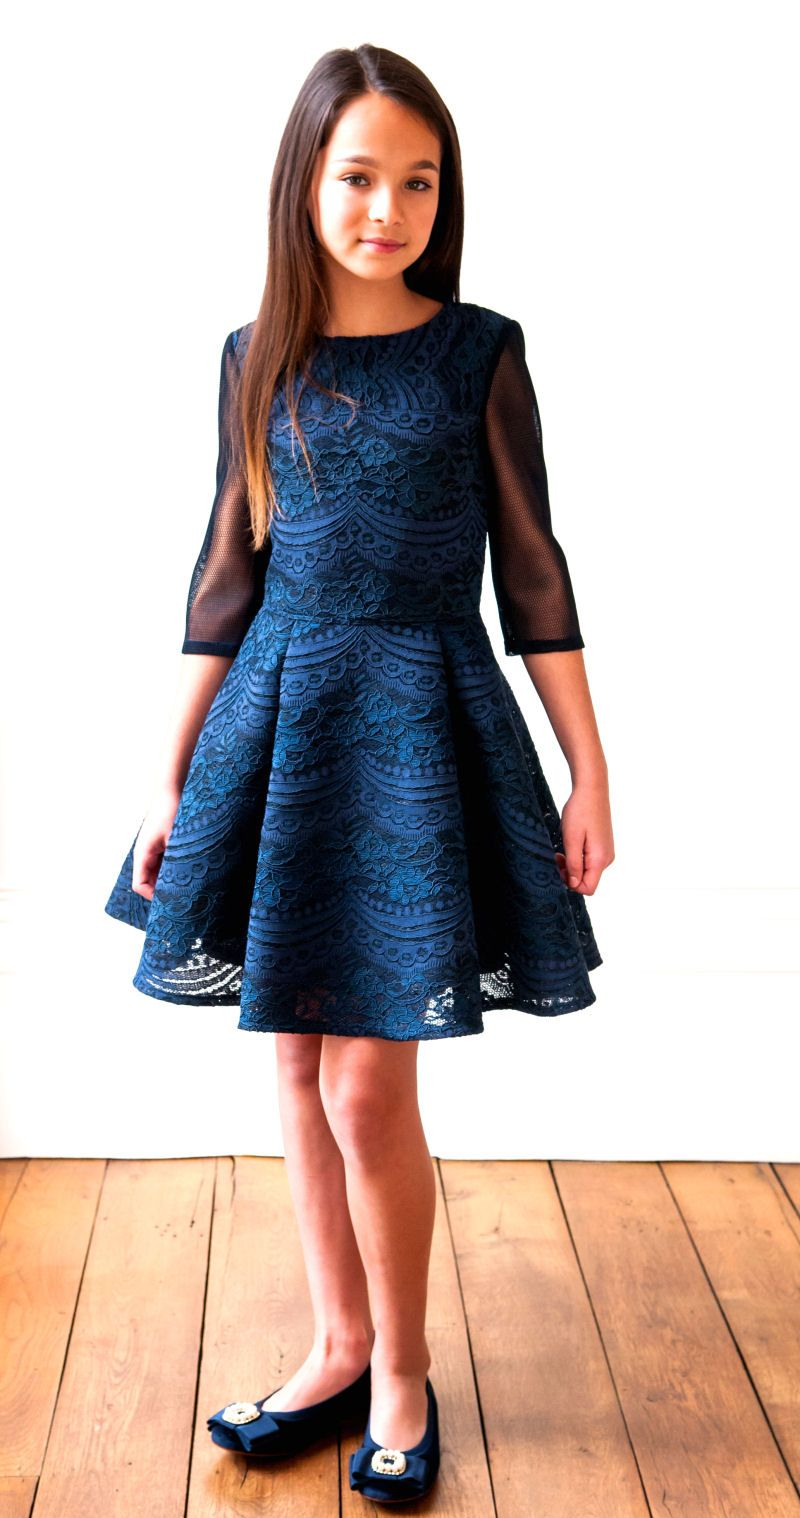 49e64fe8acc1 David Charles Navy lace Overlay Tween Party Dress 11 12 15 ...